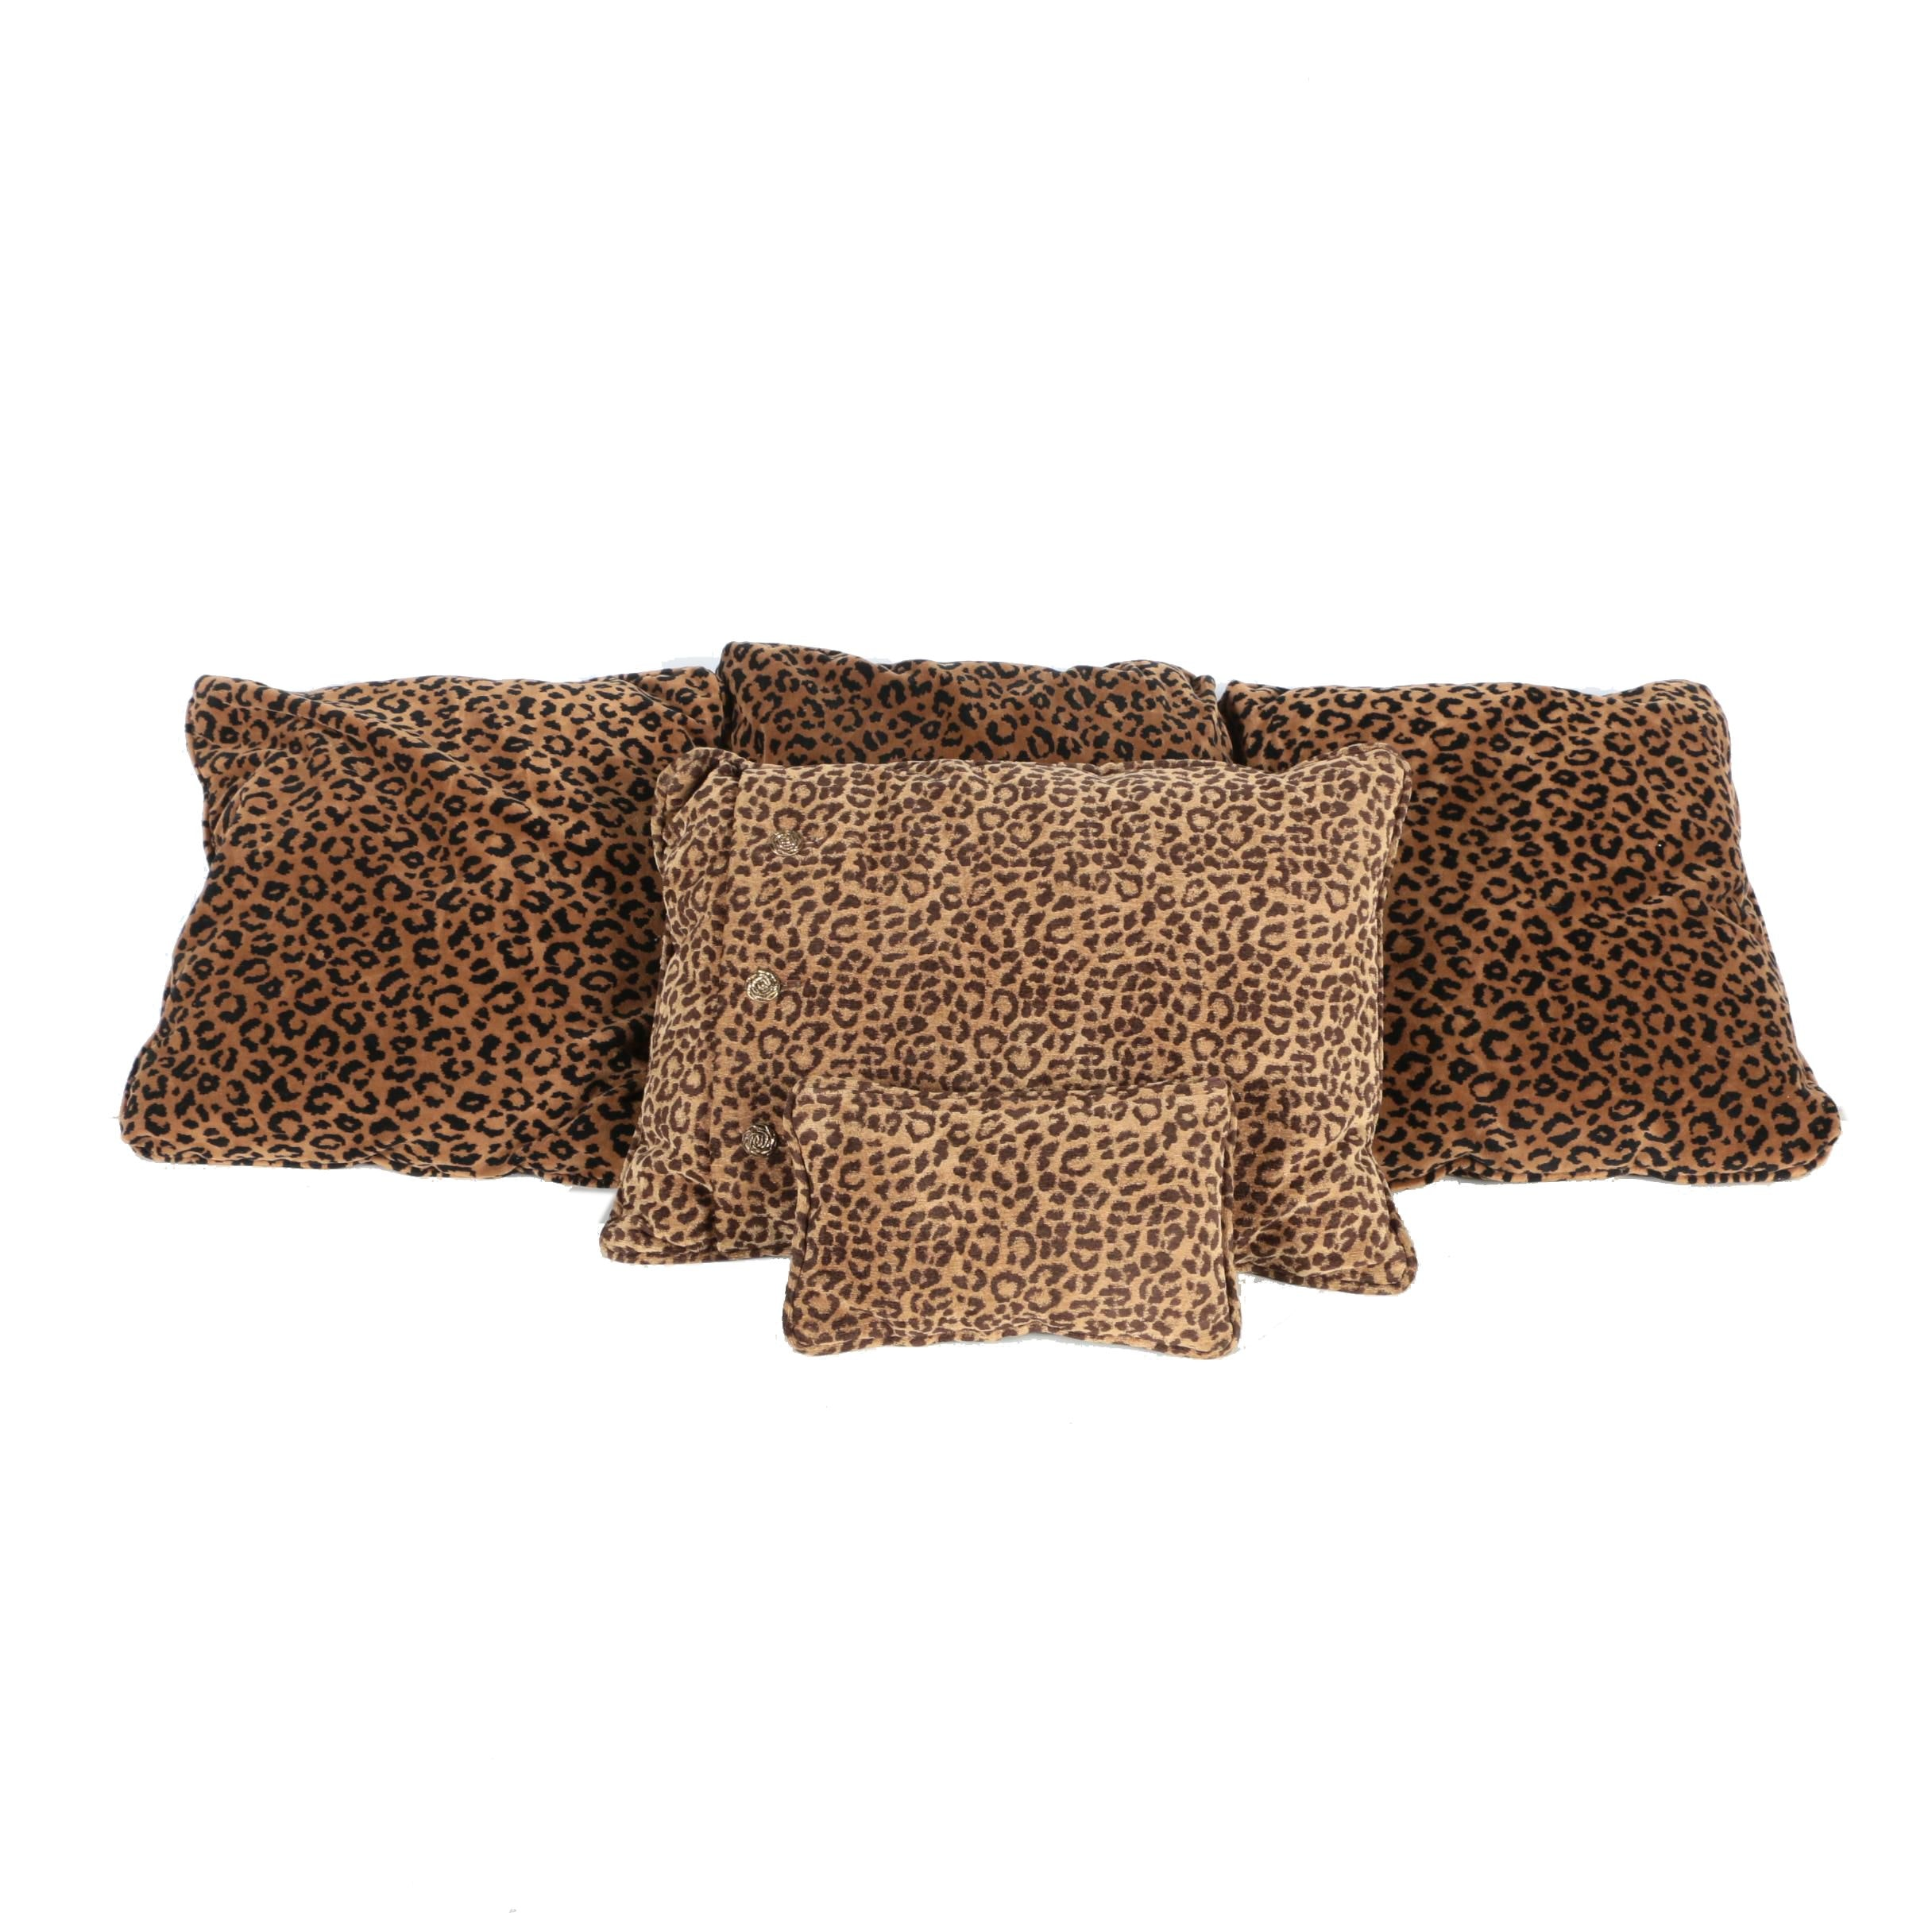 Collection of Leopard Print Accent Pillows